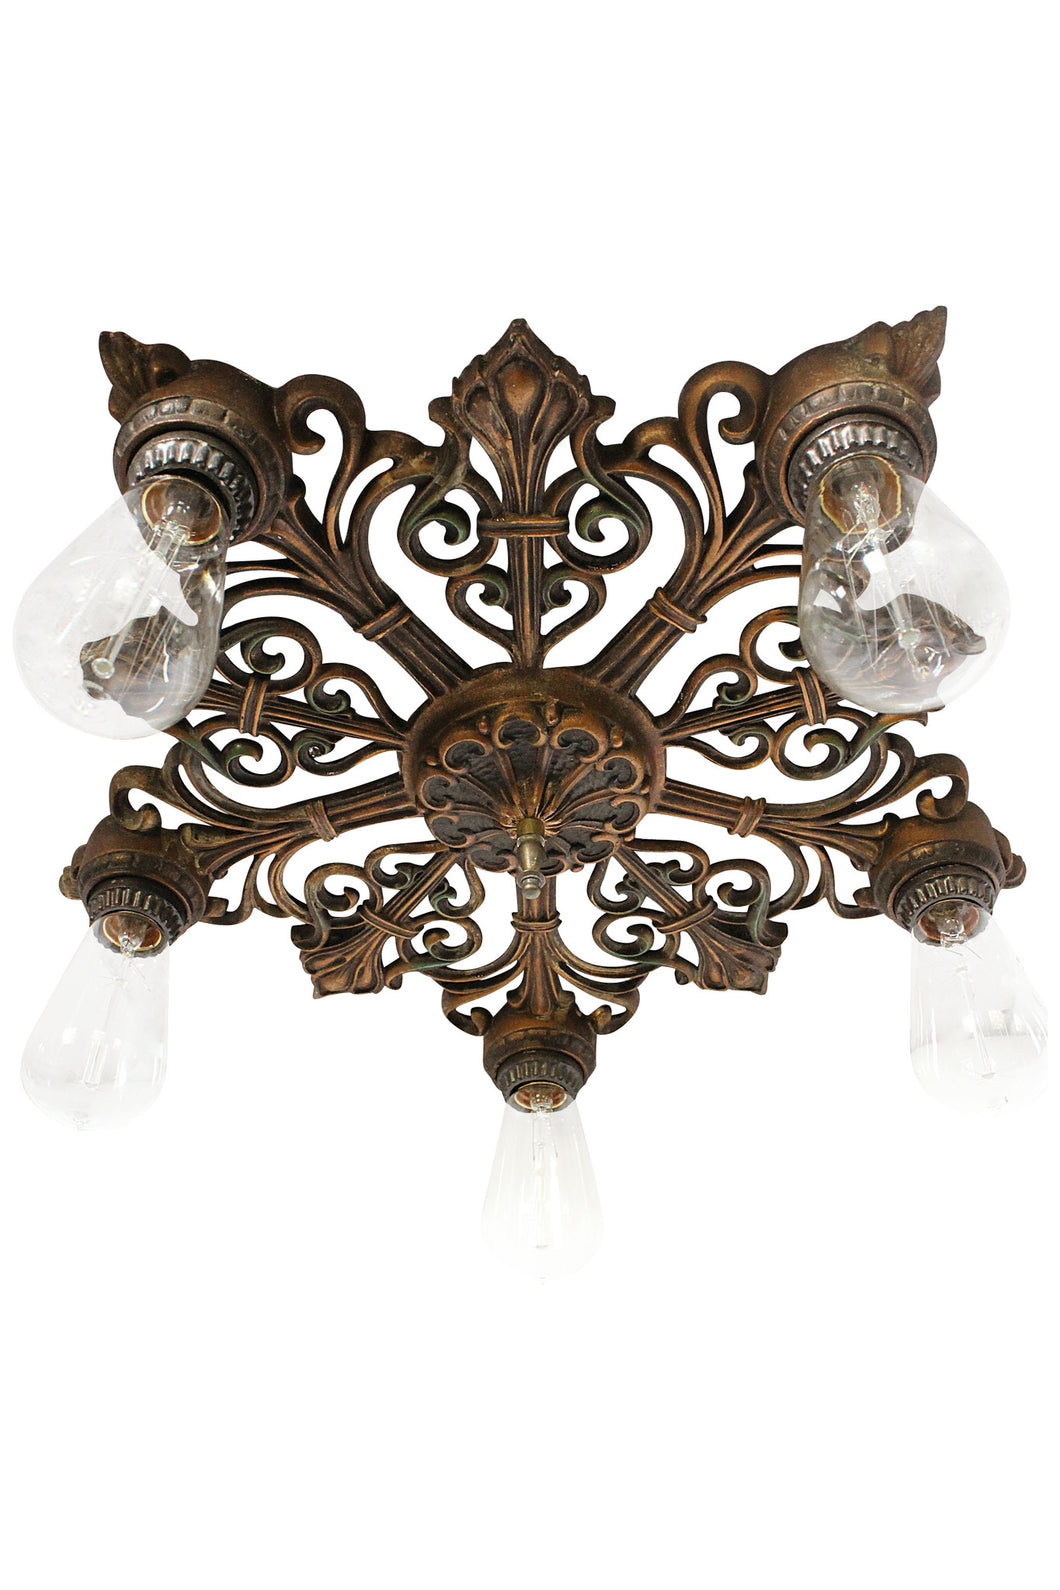 antique-ceiling-fixture